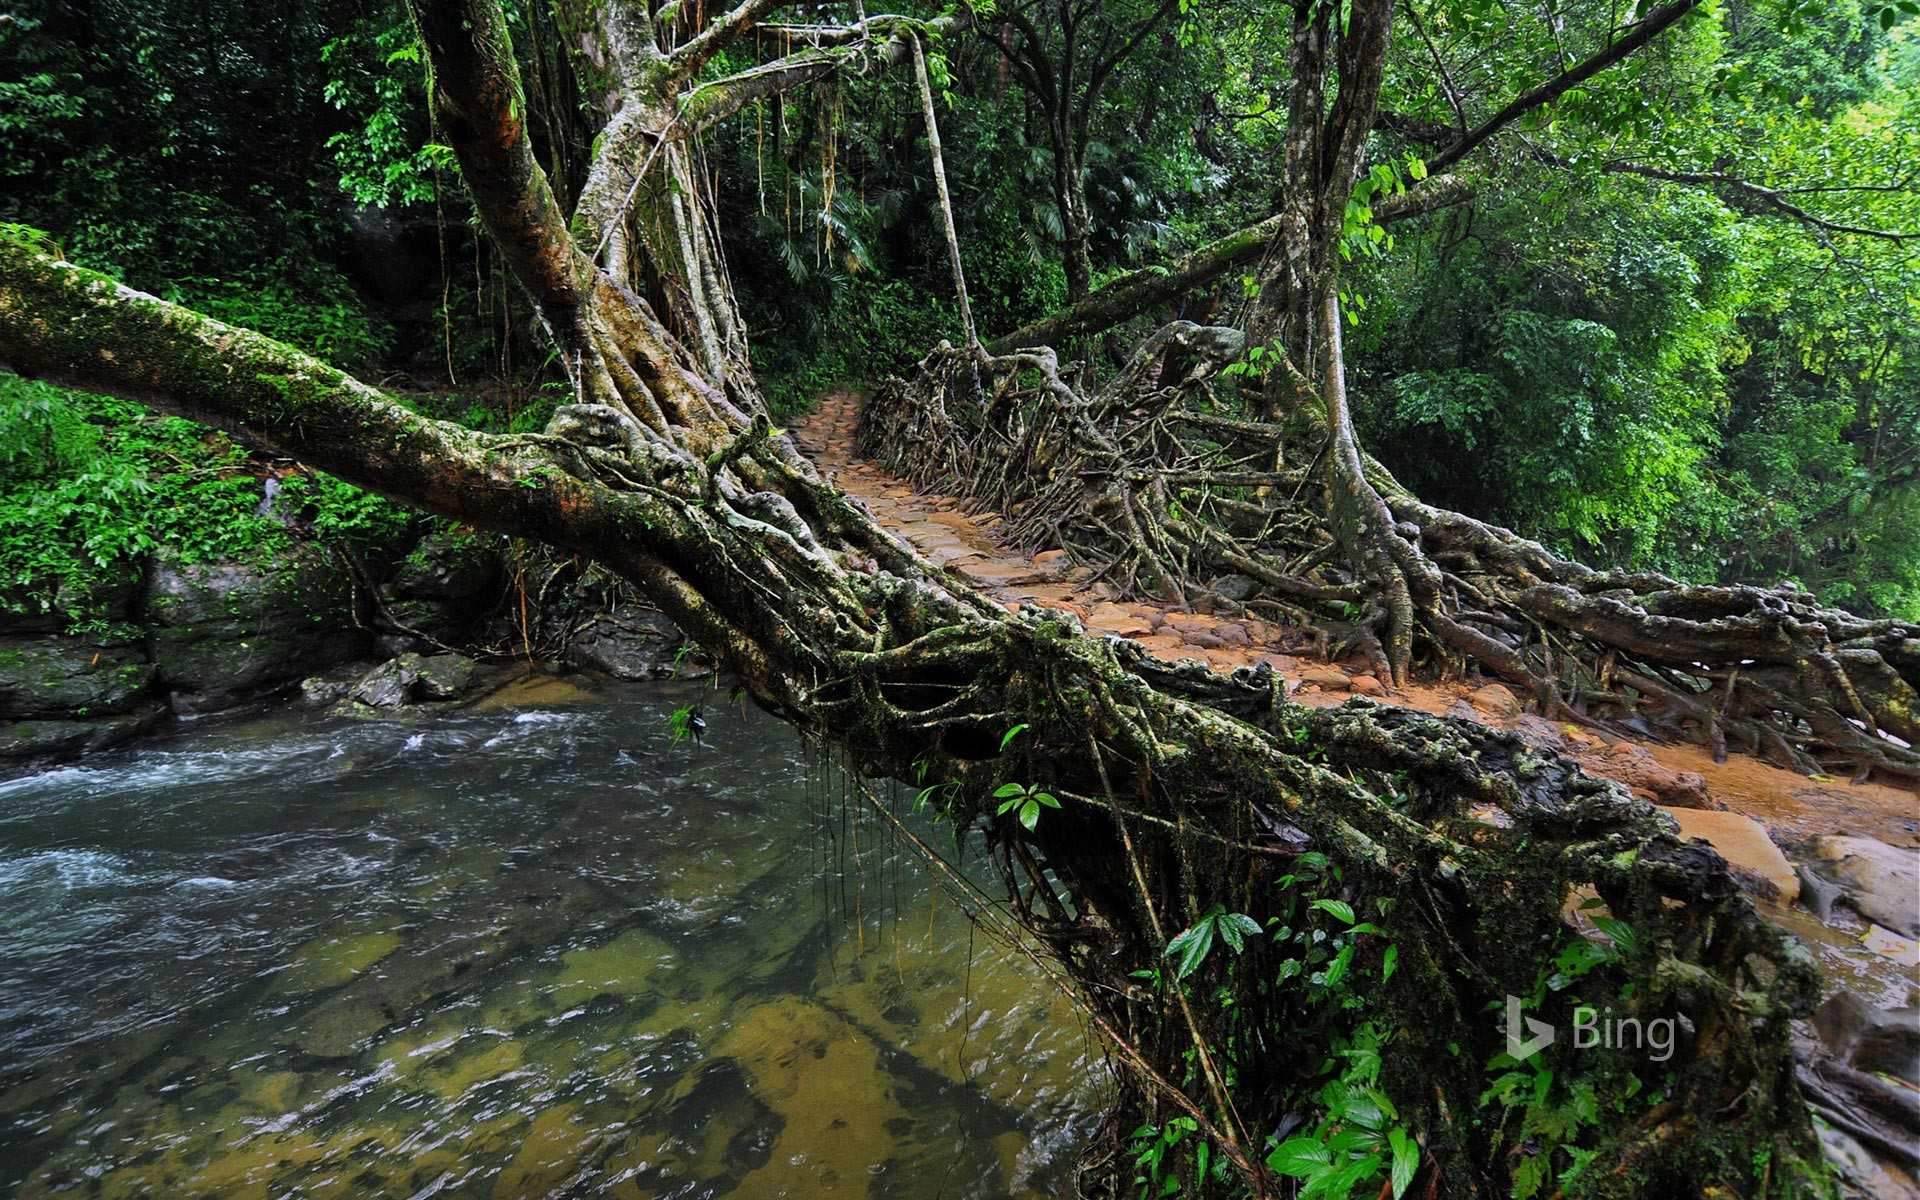 Living root bridge in India